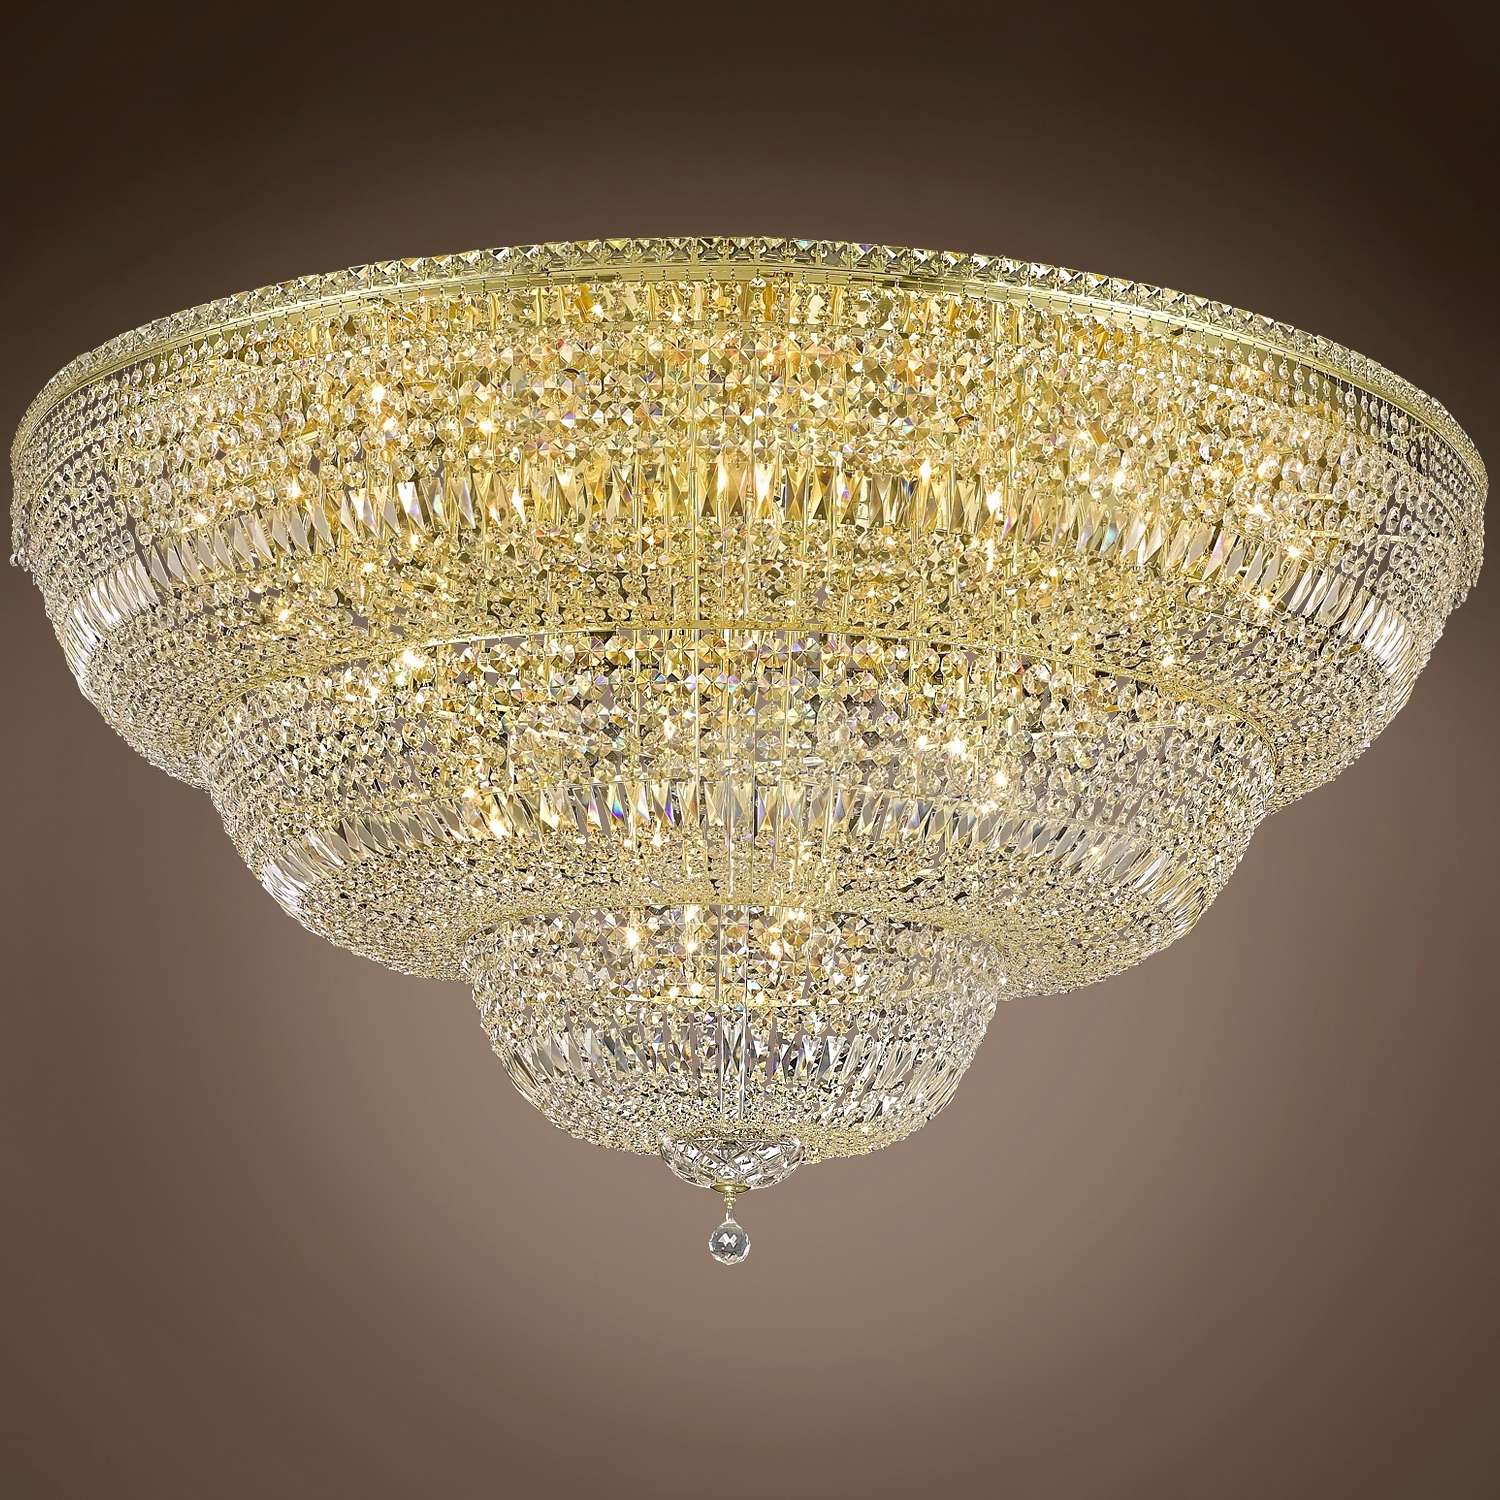 """Wall Mount Crystal Chandeliers Inside Well Known Joshua Marshal 701266 Invisible Design 48 Light 60"""" Flush Mount From (View 12 of 15)"""